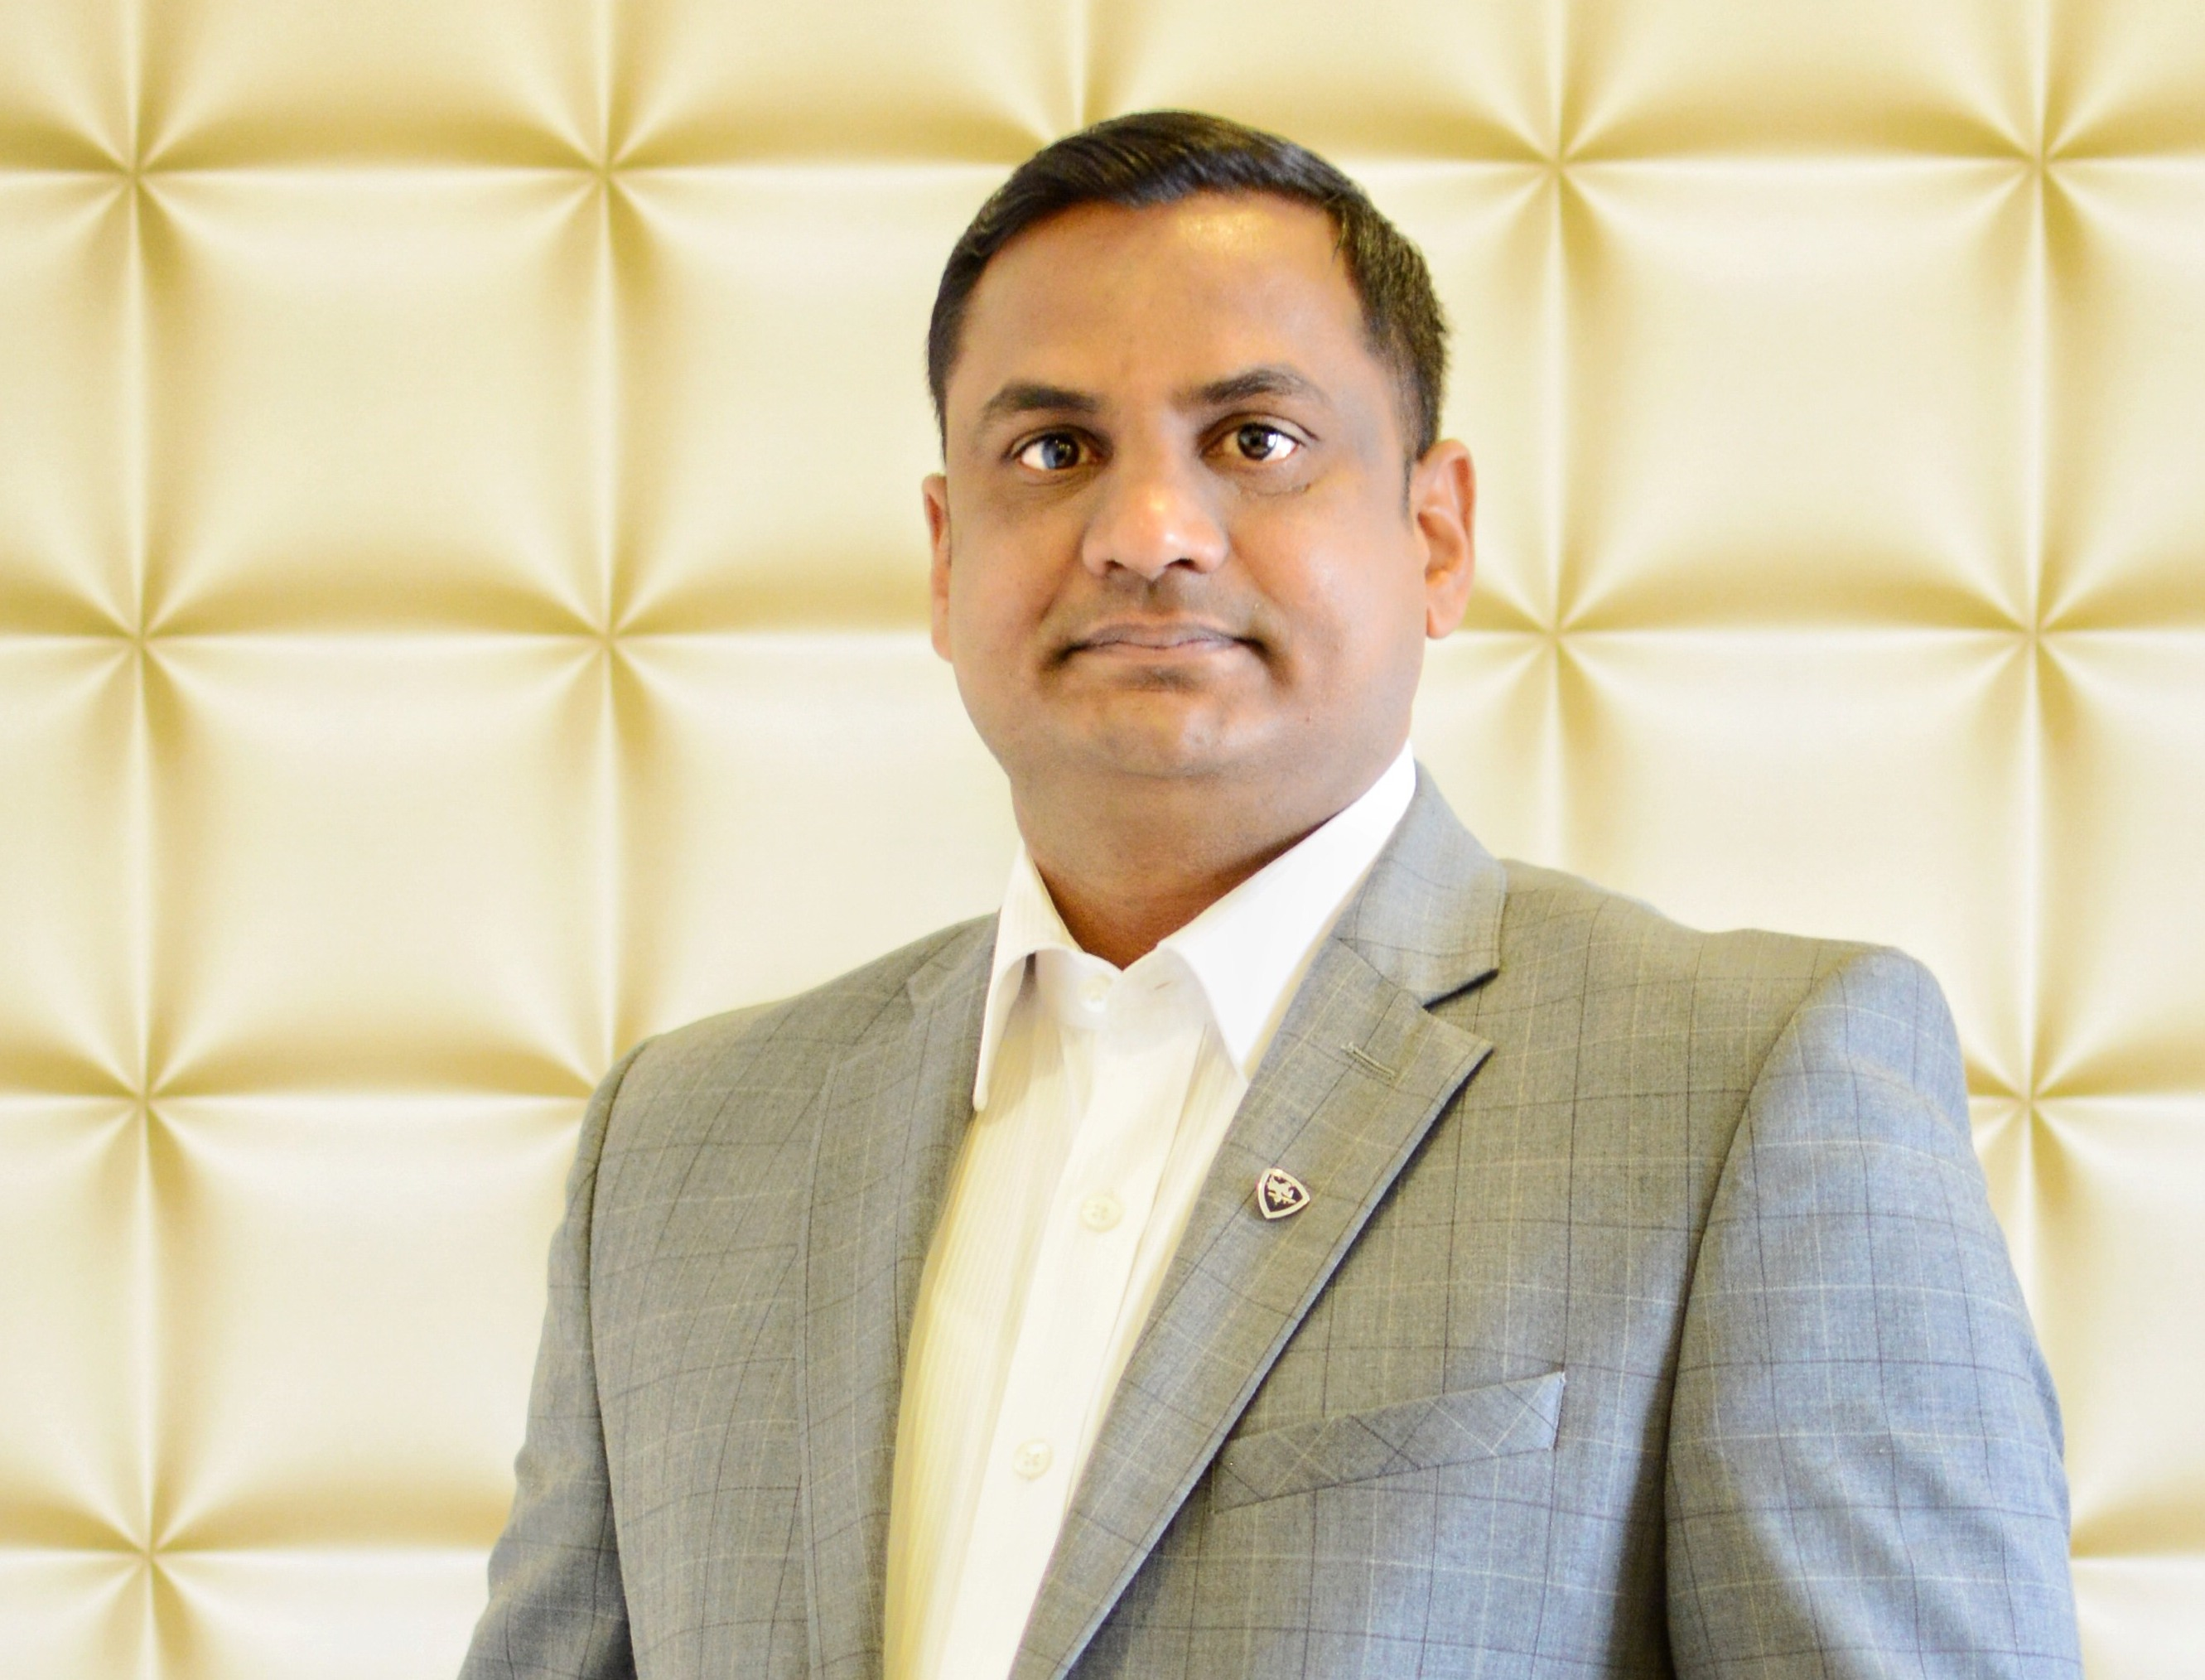 ICT Acumen with Entrepreneurial Courage: Meet Satyam of SAP Infra Technologies